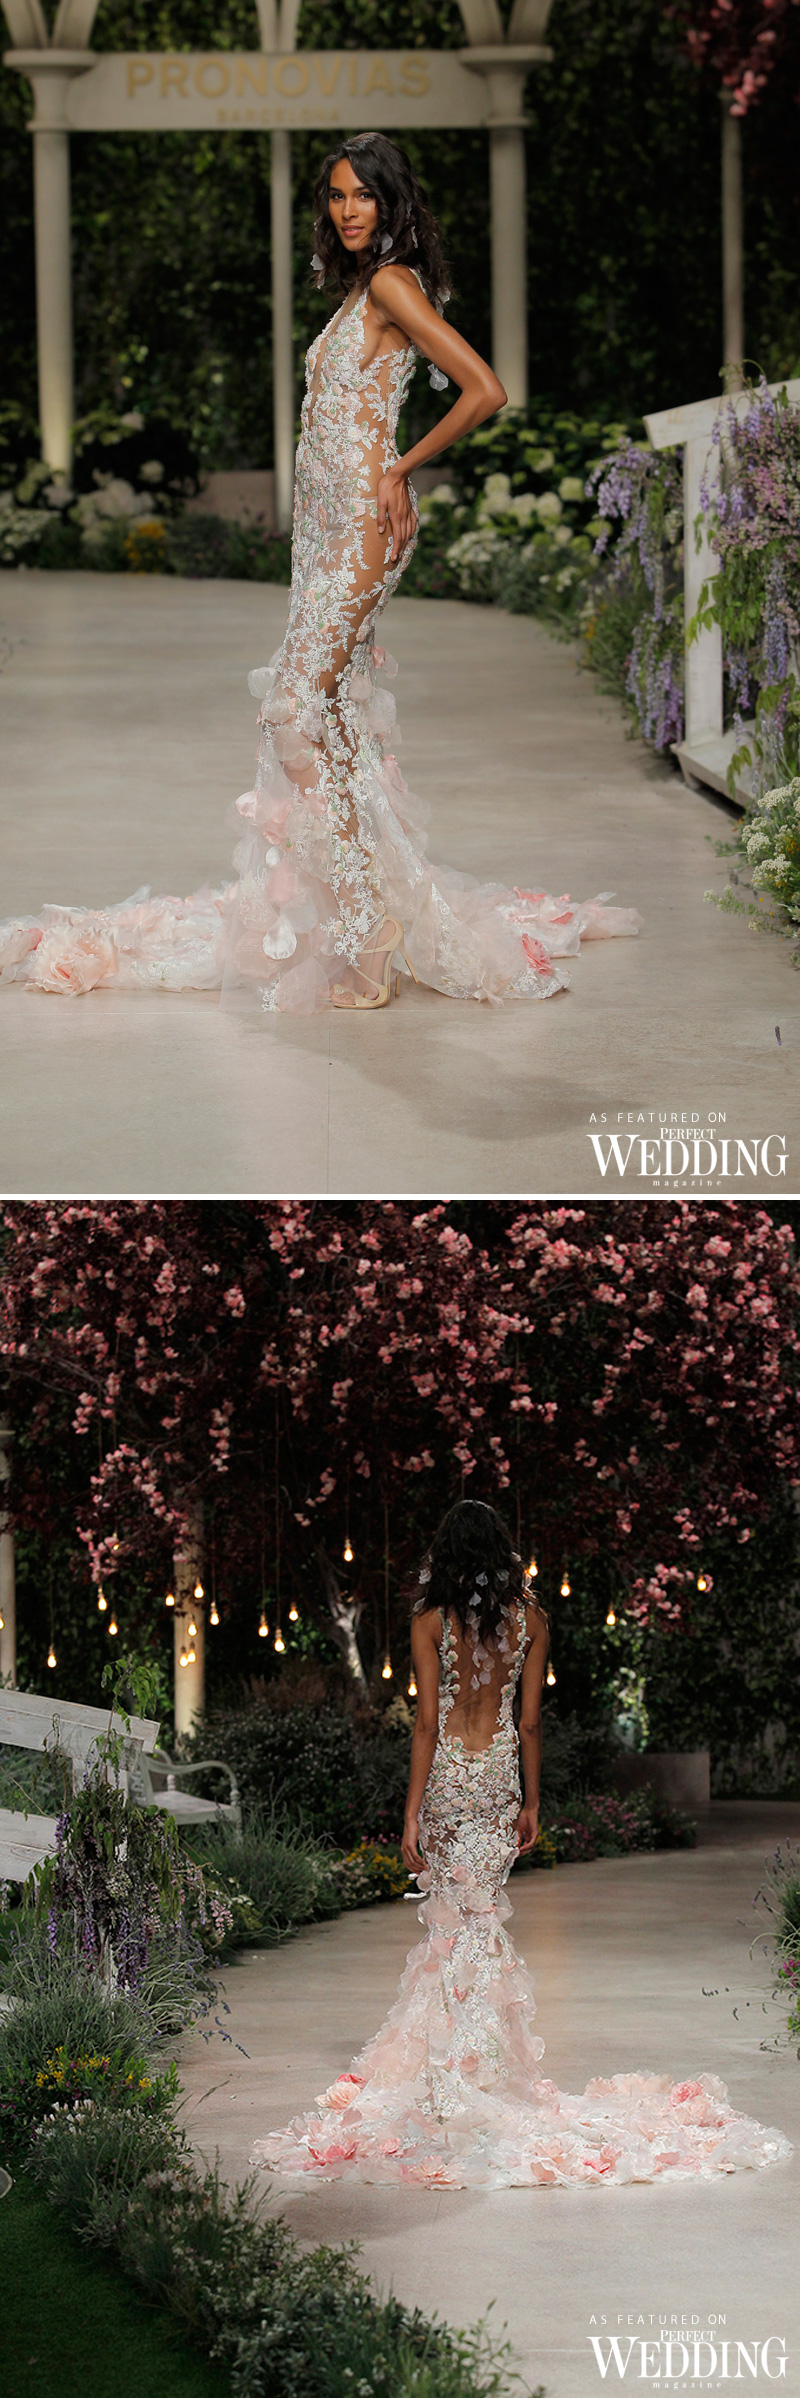 Pronovias, Atelier Pronovias, The Making of Pronovias Dress, Herve Moreau, Atelier Pronovias 2019, Pronovias Carolina Dress, Perfect Wedding Magazine, Wedding Trends 2019, Pronovias Bride